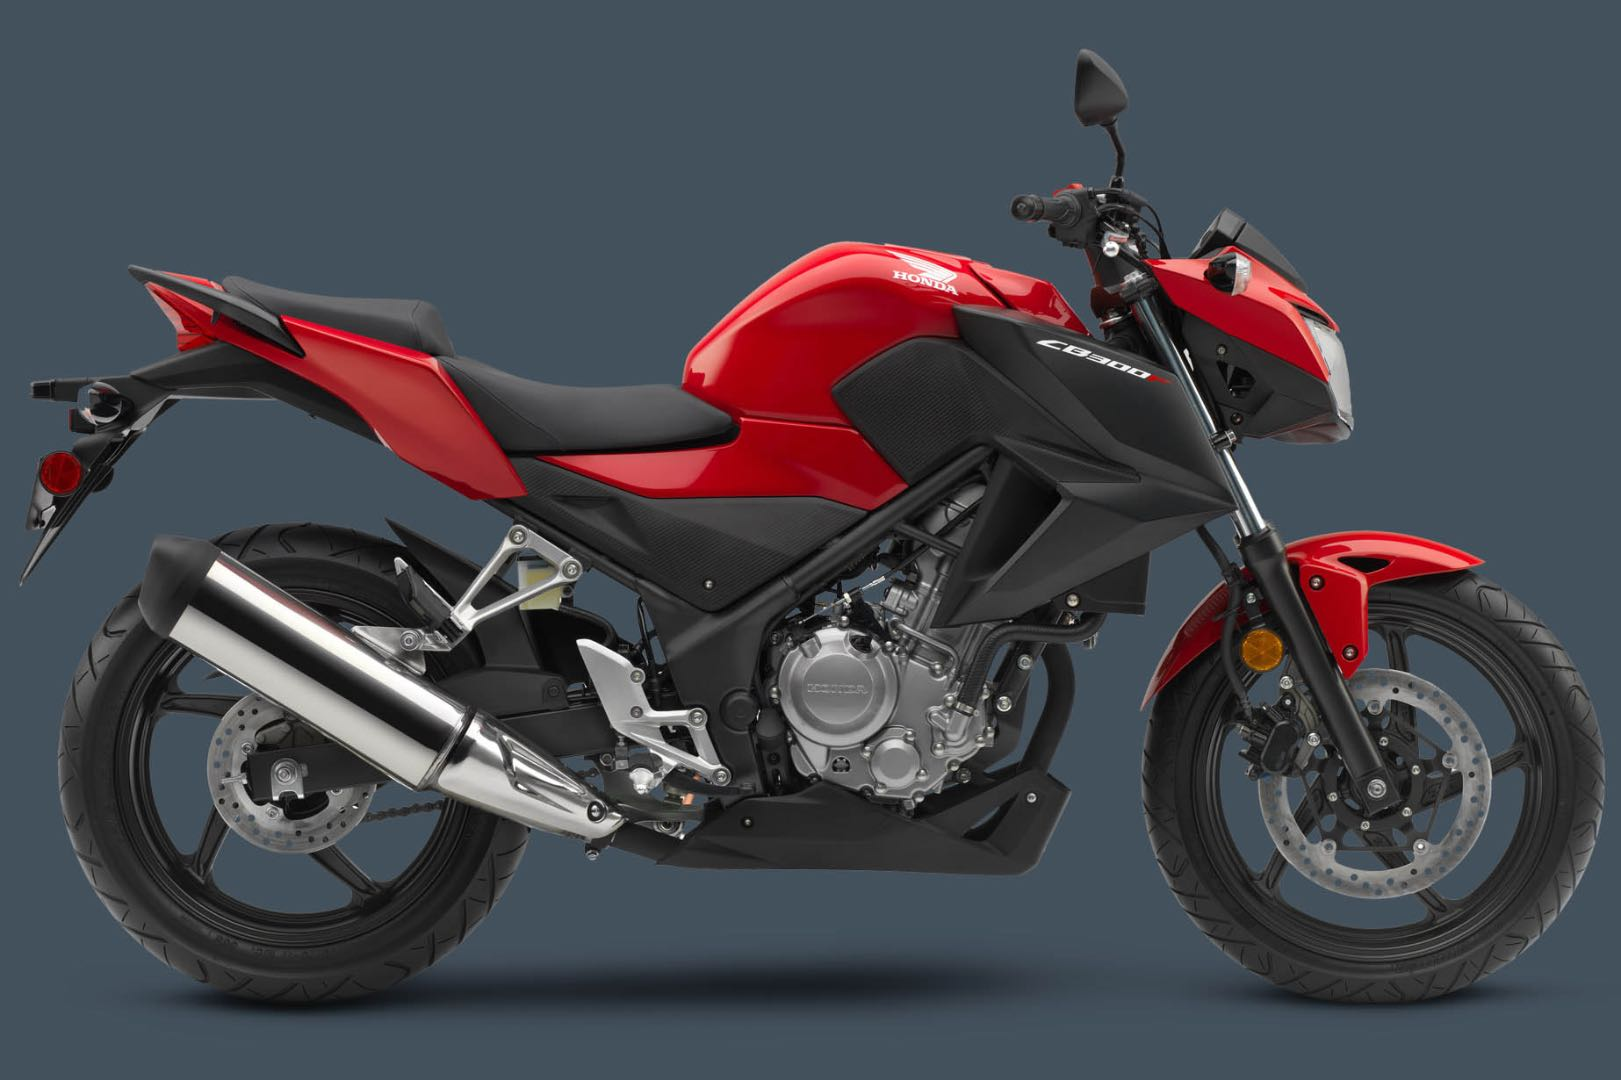 2017 Honda CB300F Buyer's Guide Specs Price